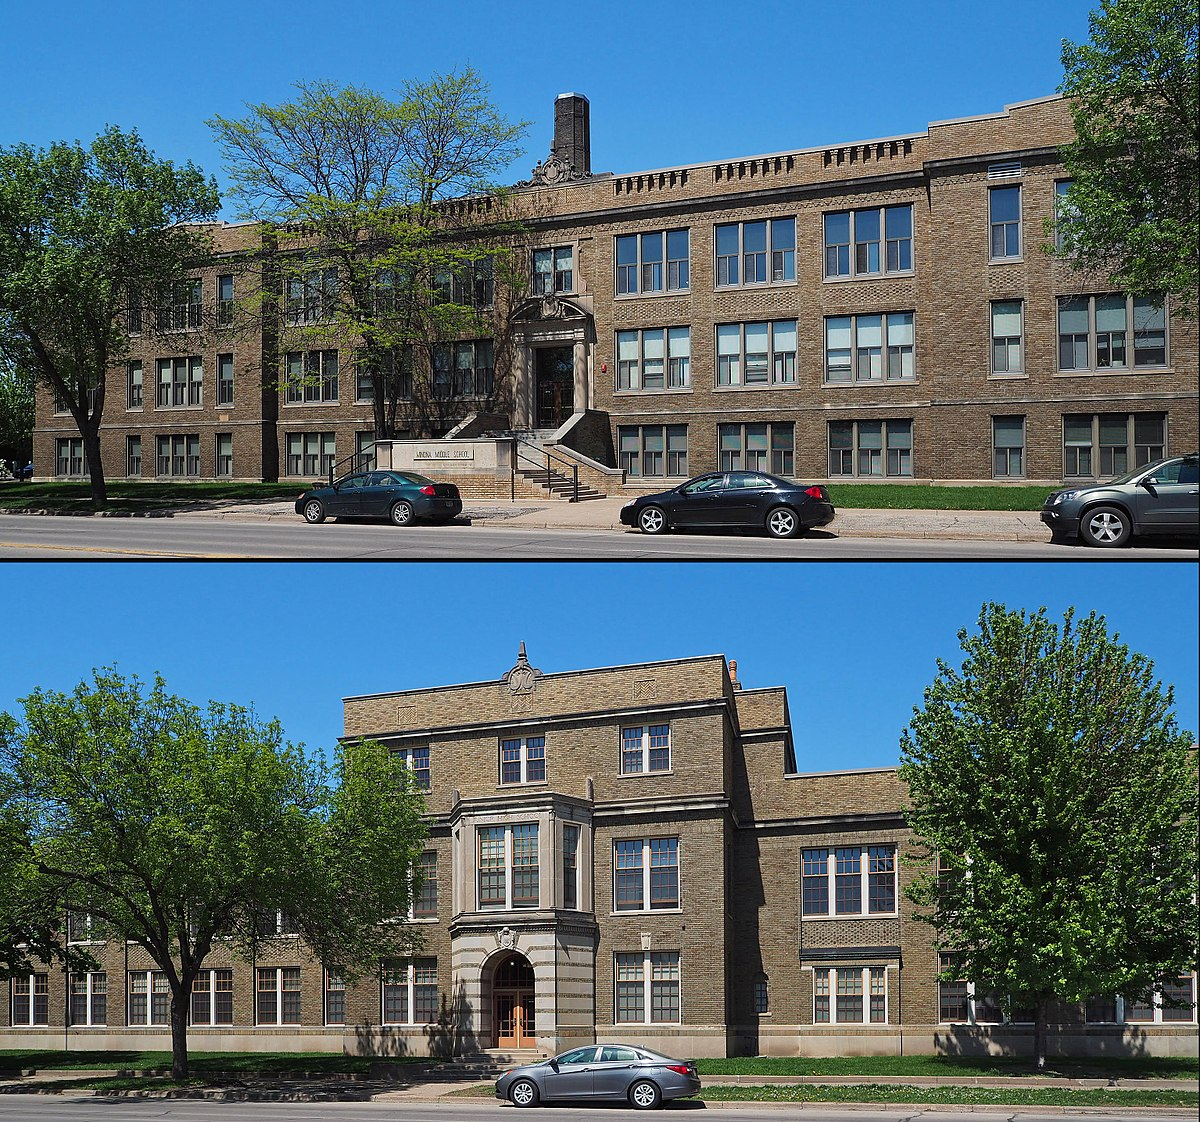 Middle School: Old Winona Middle School